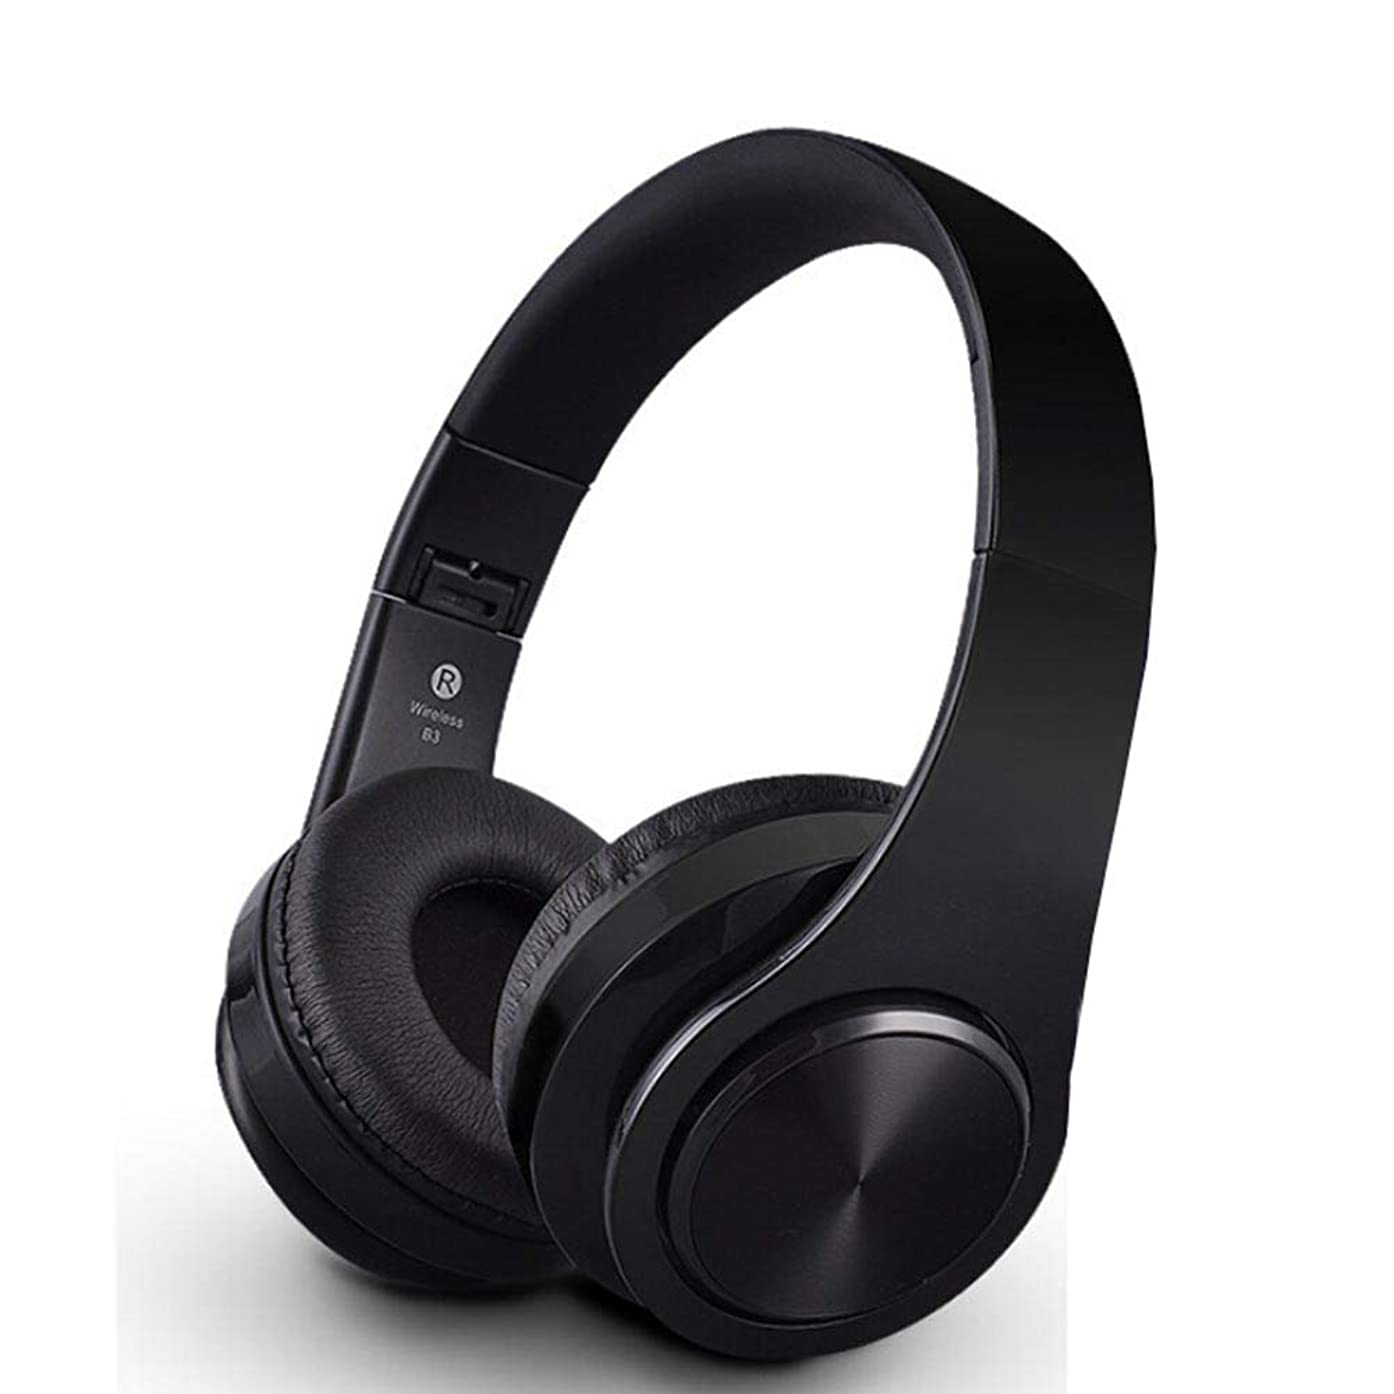 Wireless HiFi Bluetooth Headphones with 3.5mm Audio Cable - Foldable Stereo HD Noise Reduction Earphones - Super Bass Headset with SD Card Slot (Black)